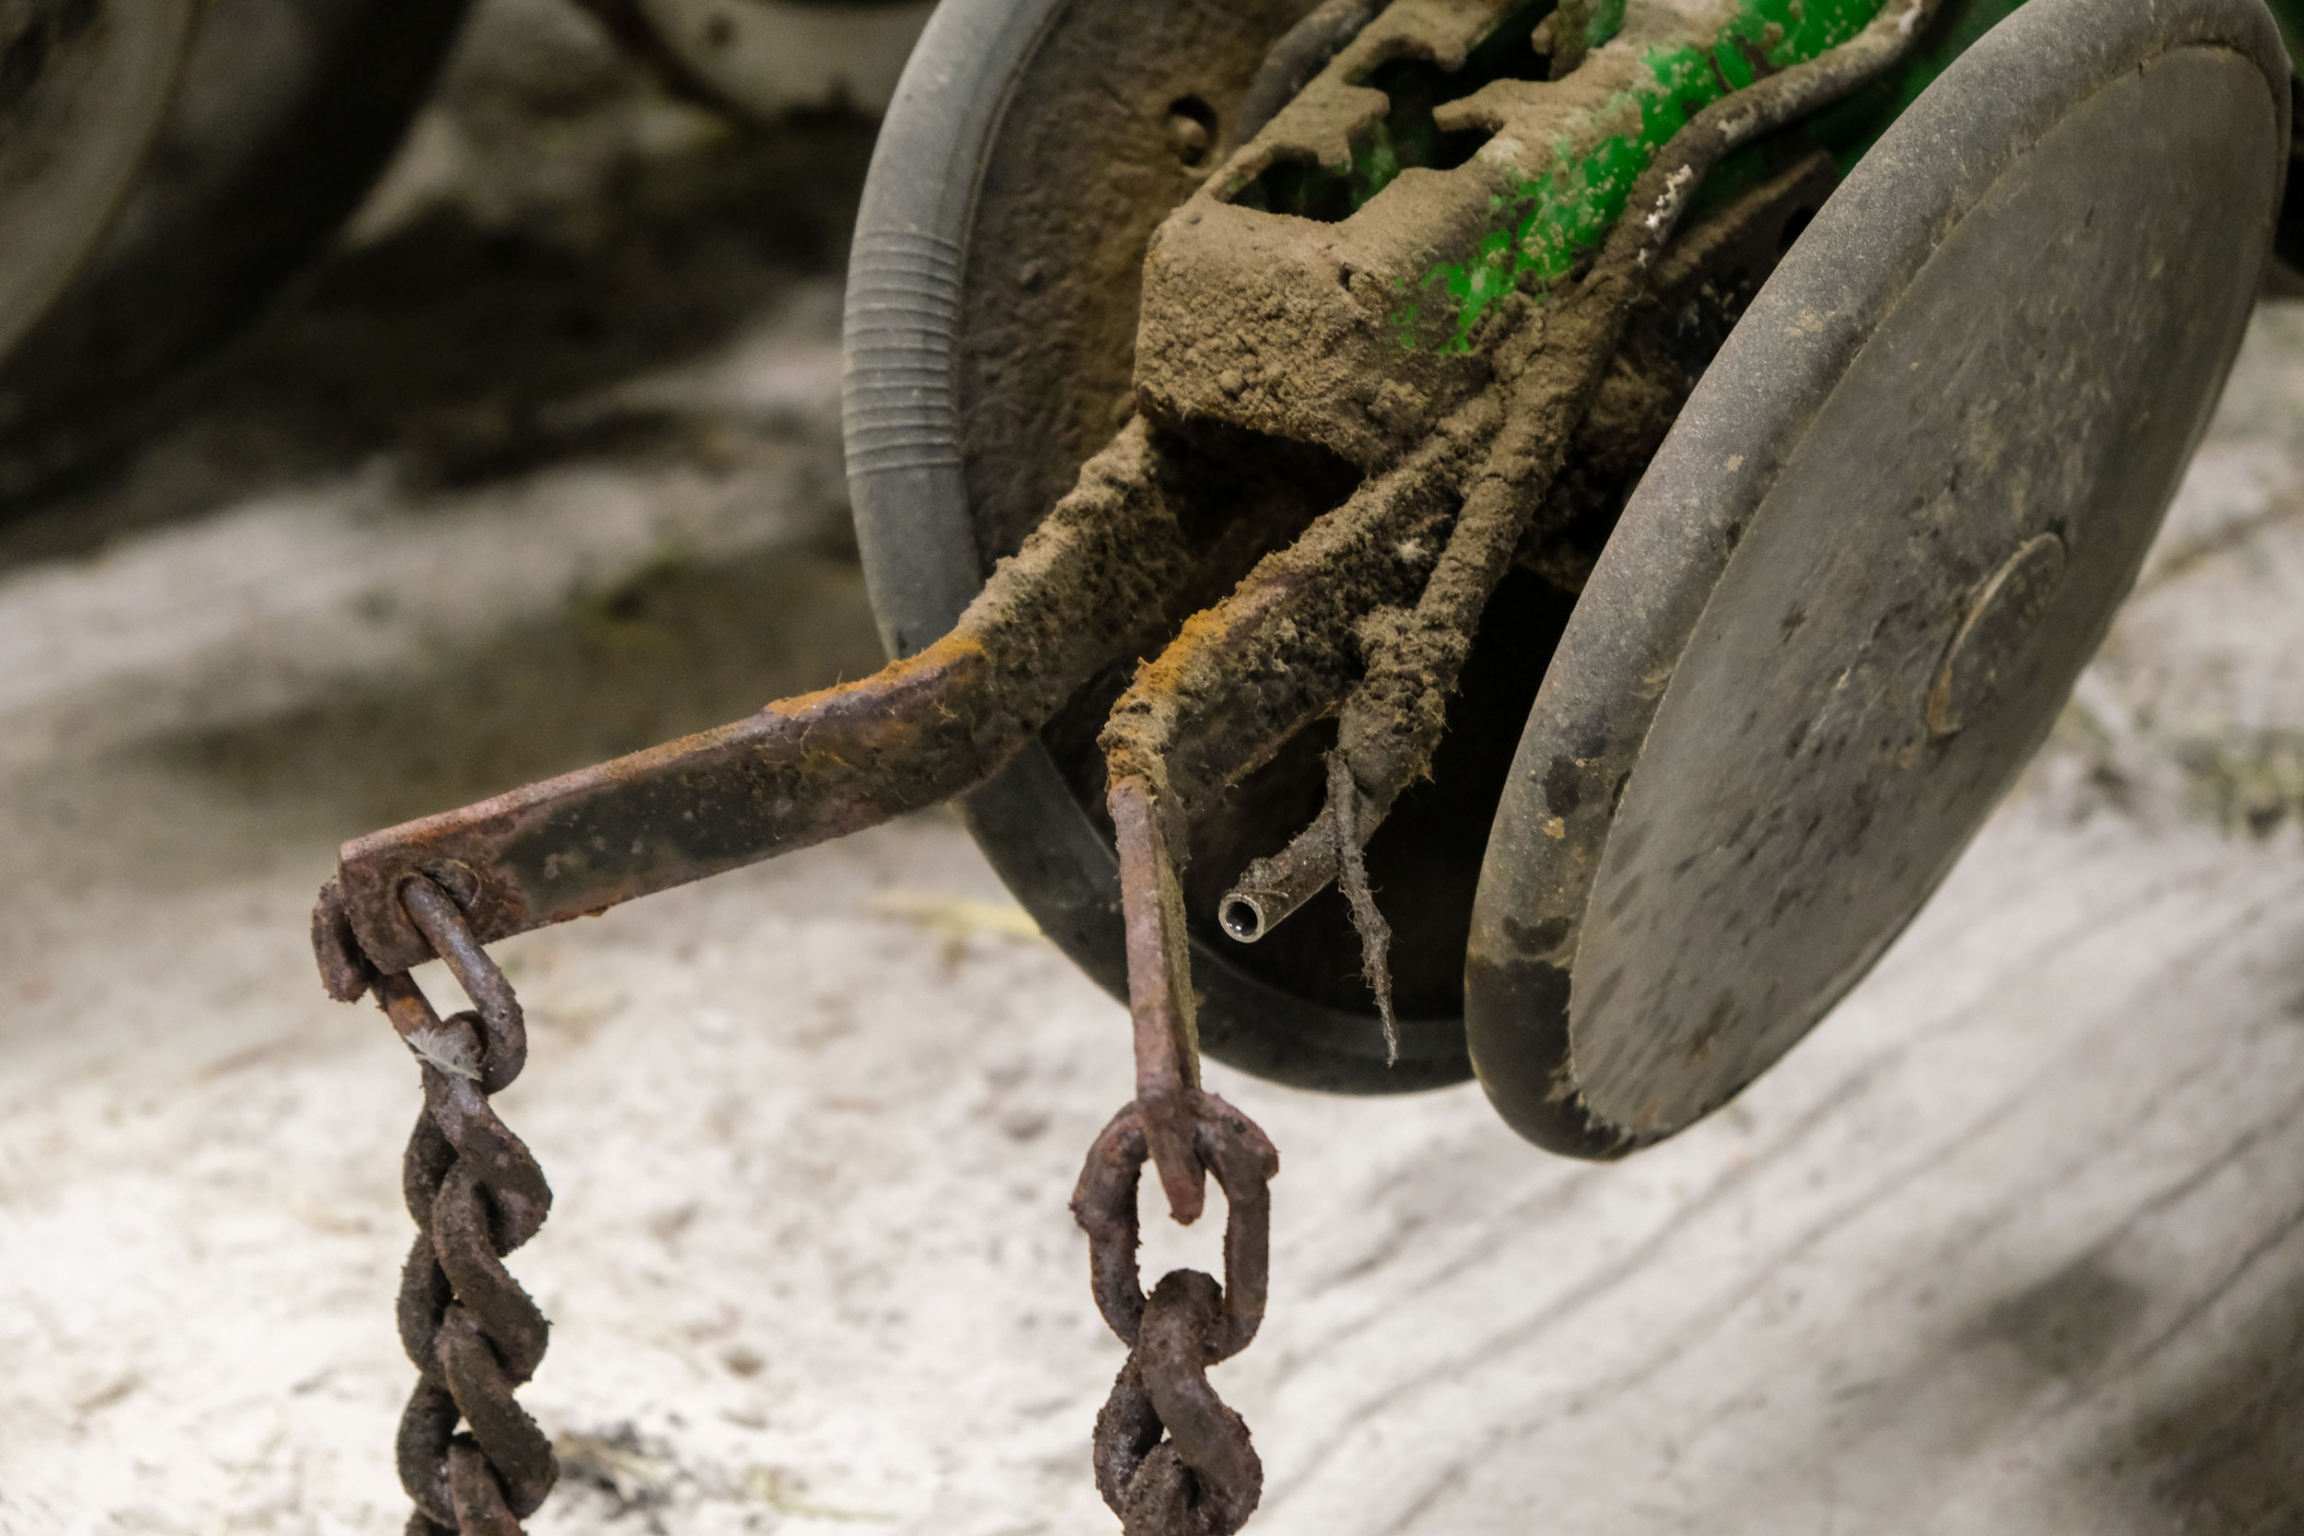 A wheel is shown with rusted metal chains attached and a small tube is connected.